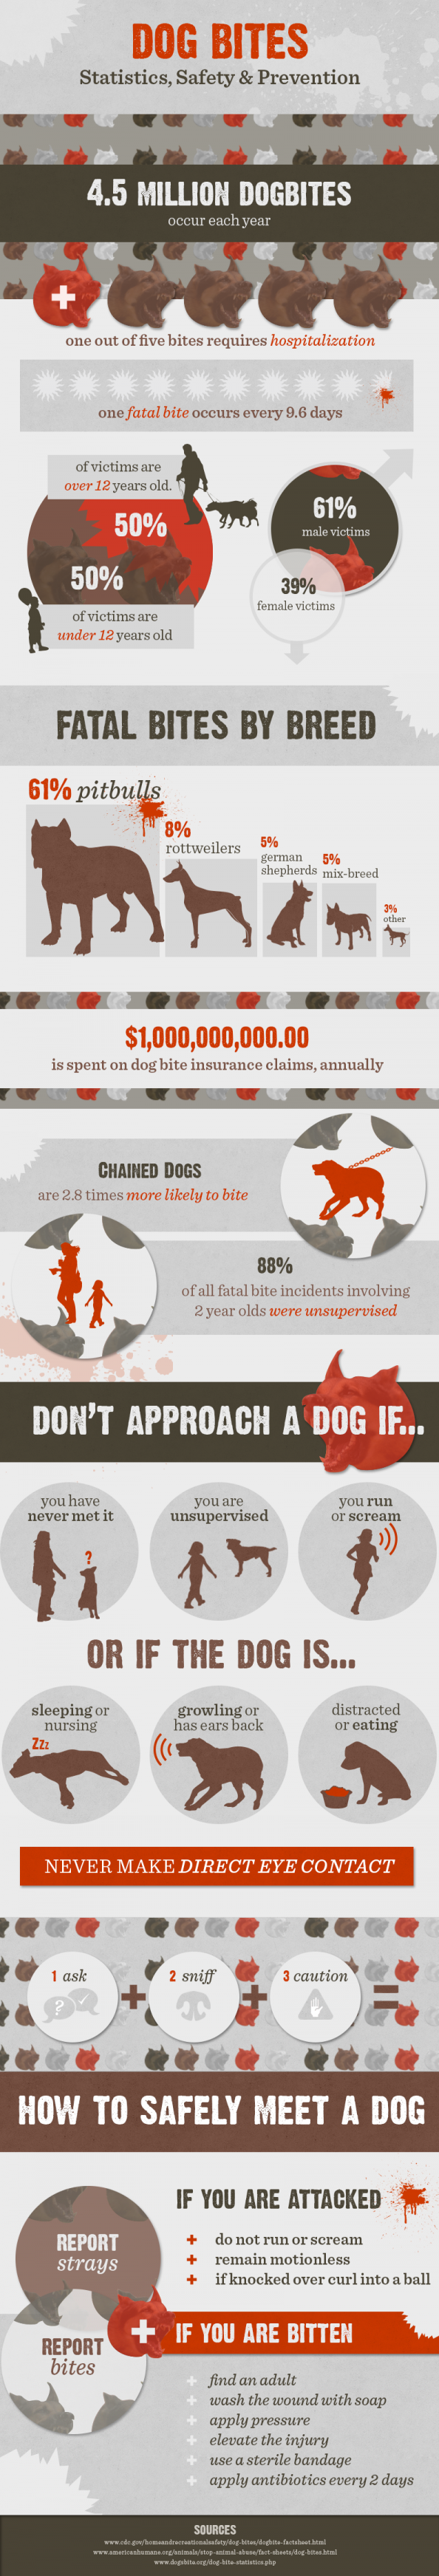 Dog bite facts and prevention measures Infographic